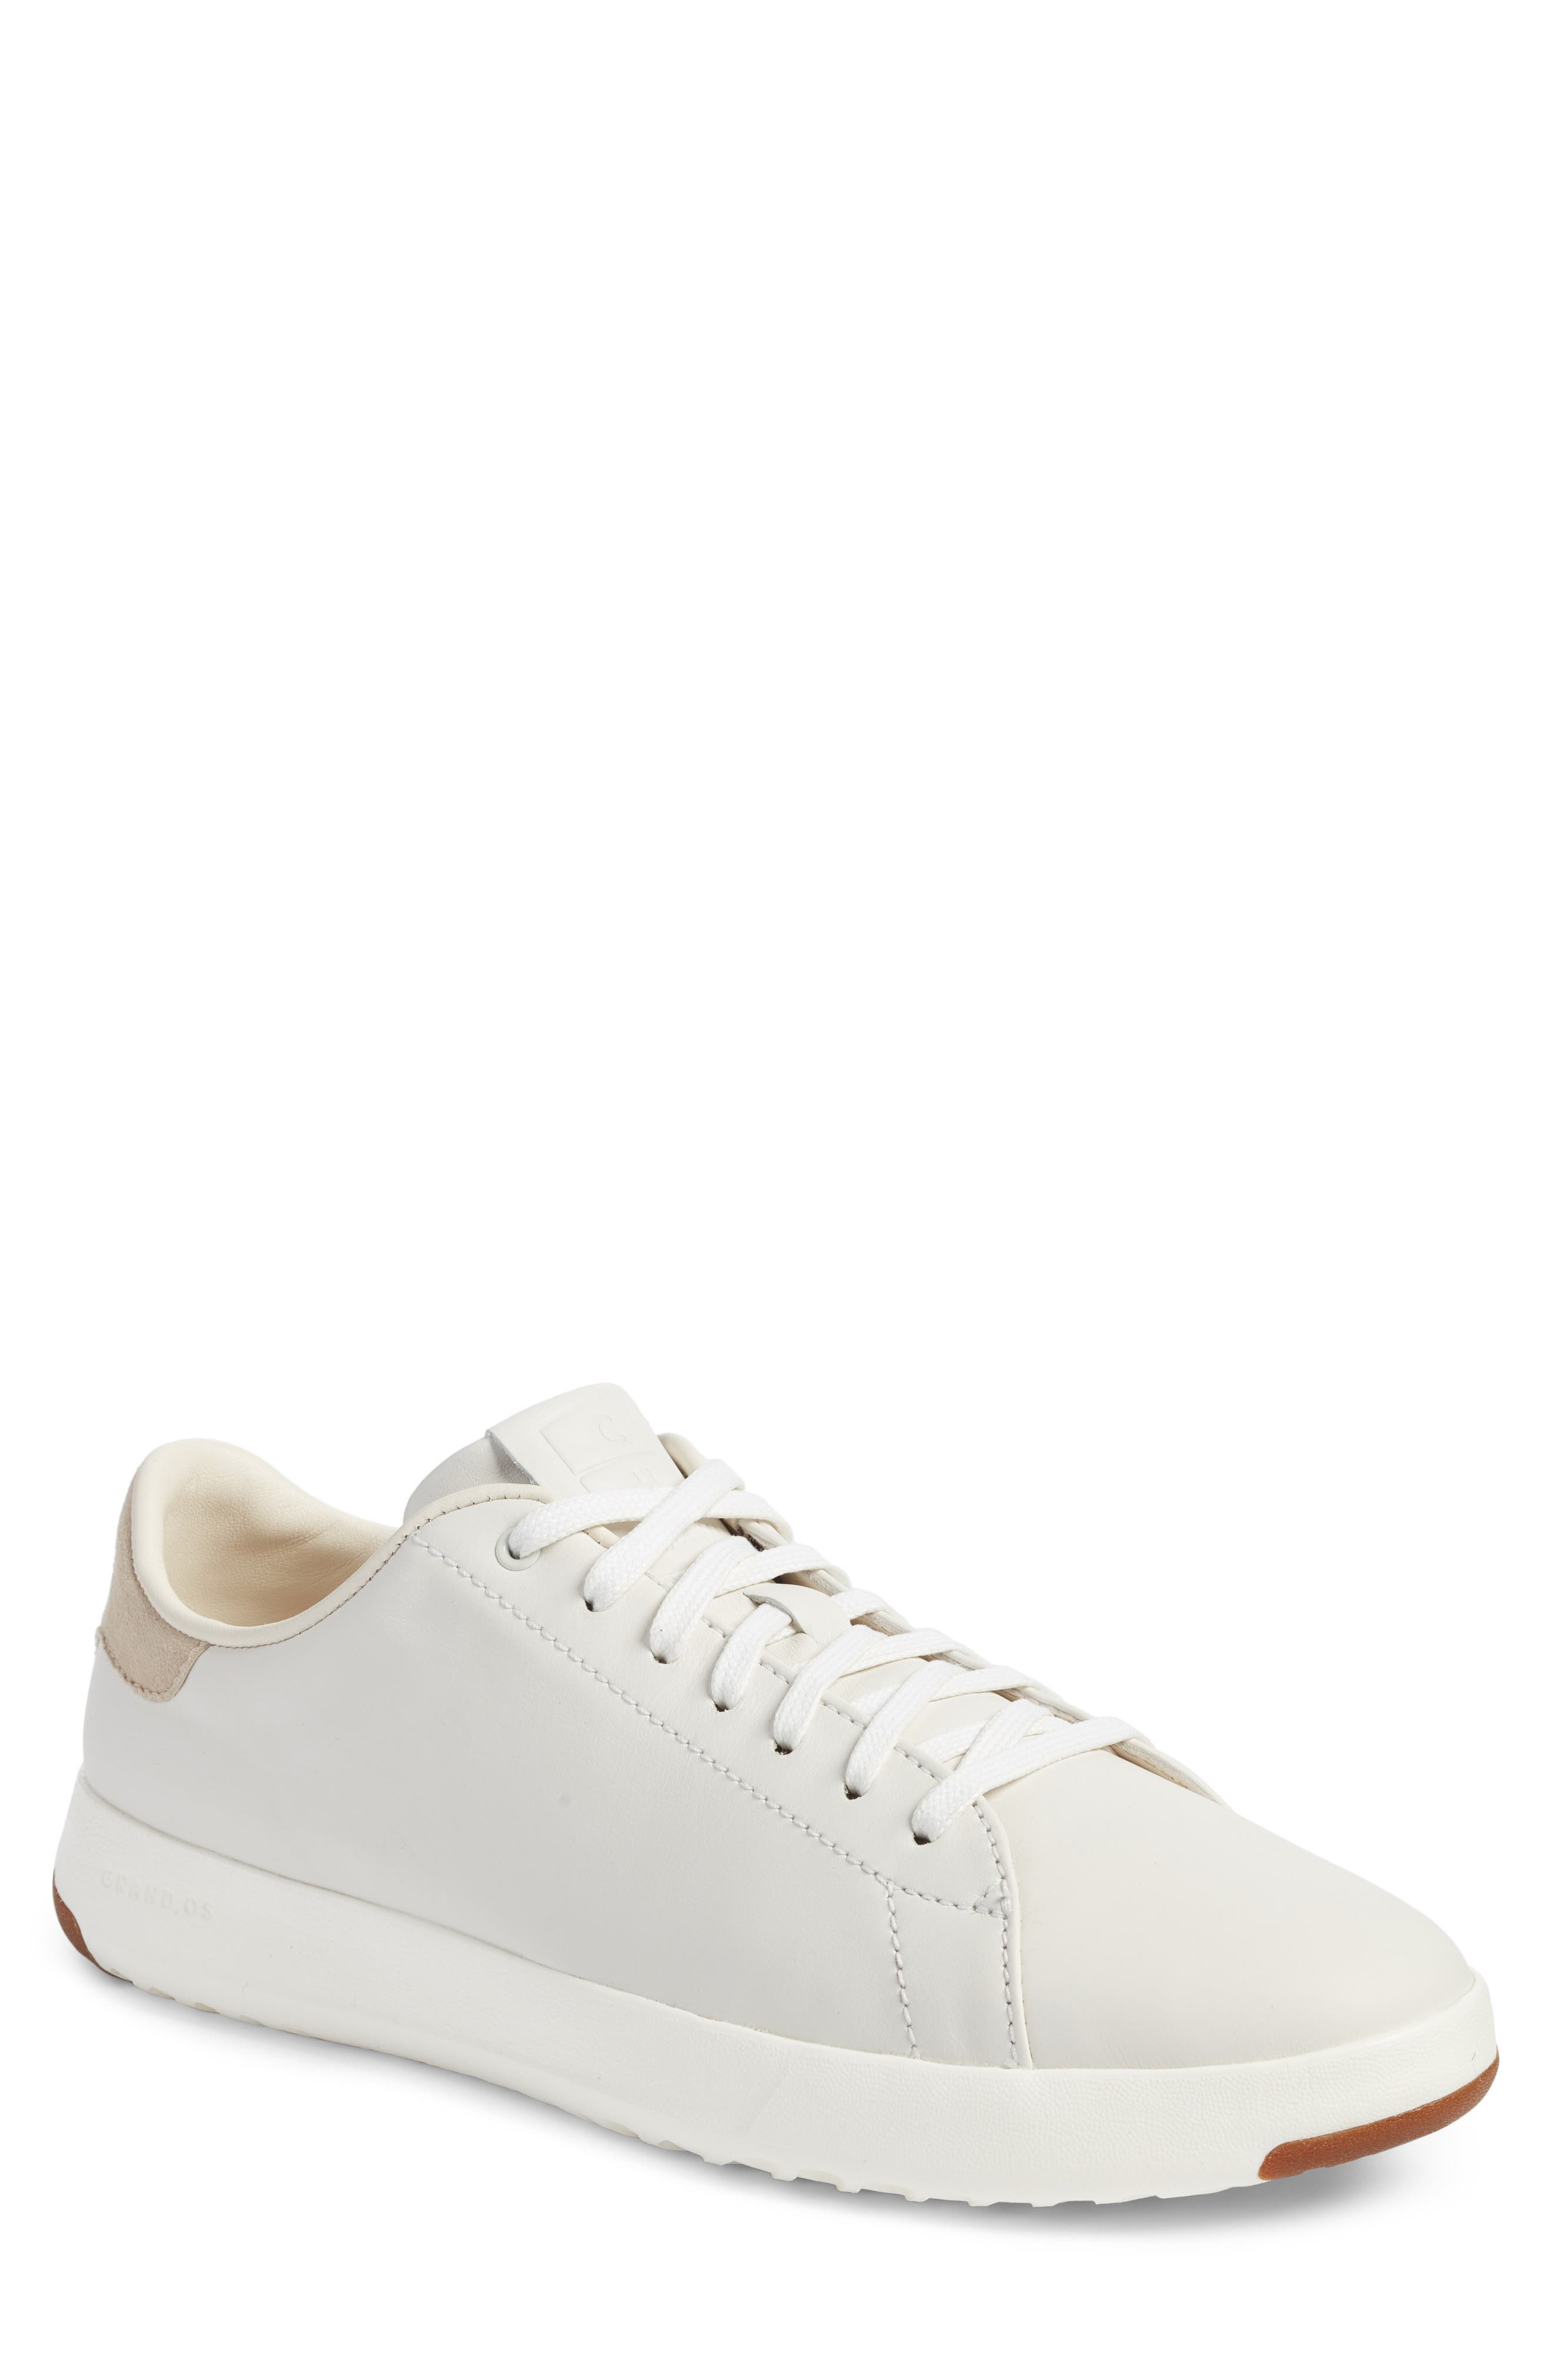 GrandPro Tennis Sneaker,                             Main thumbnail 1, color,                             WHITE